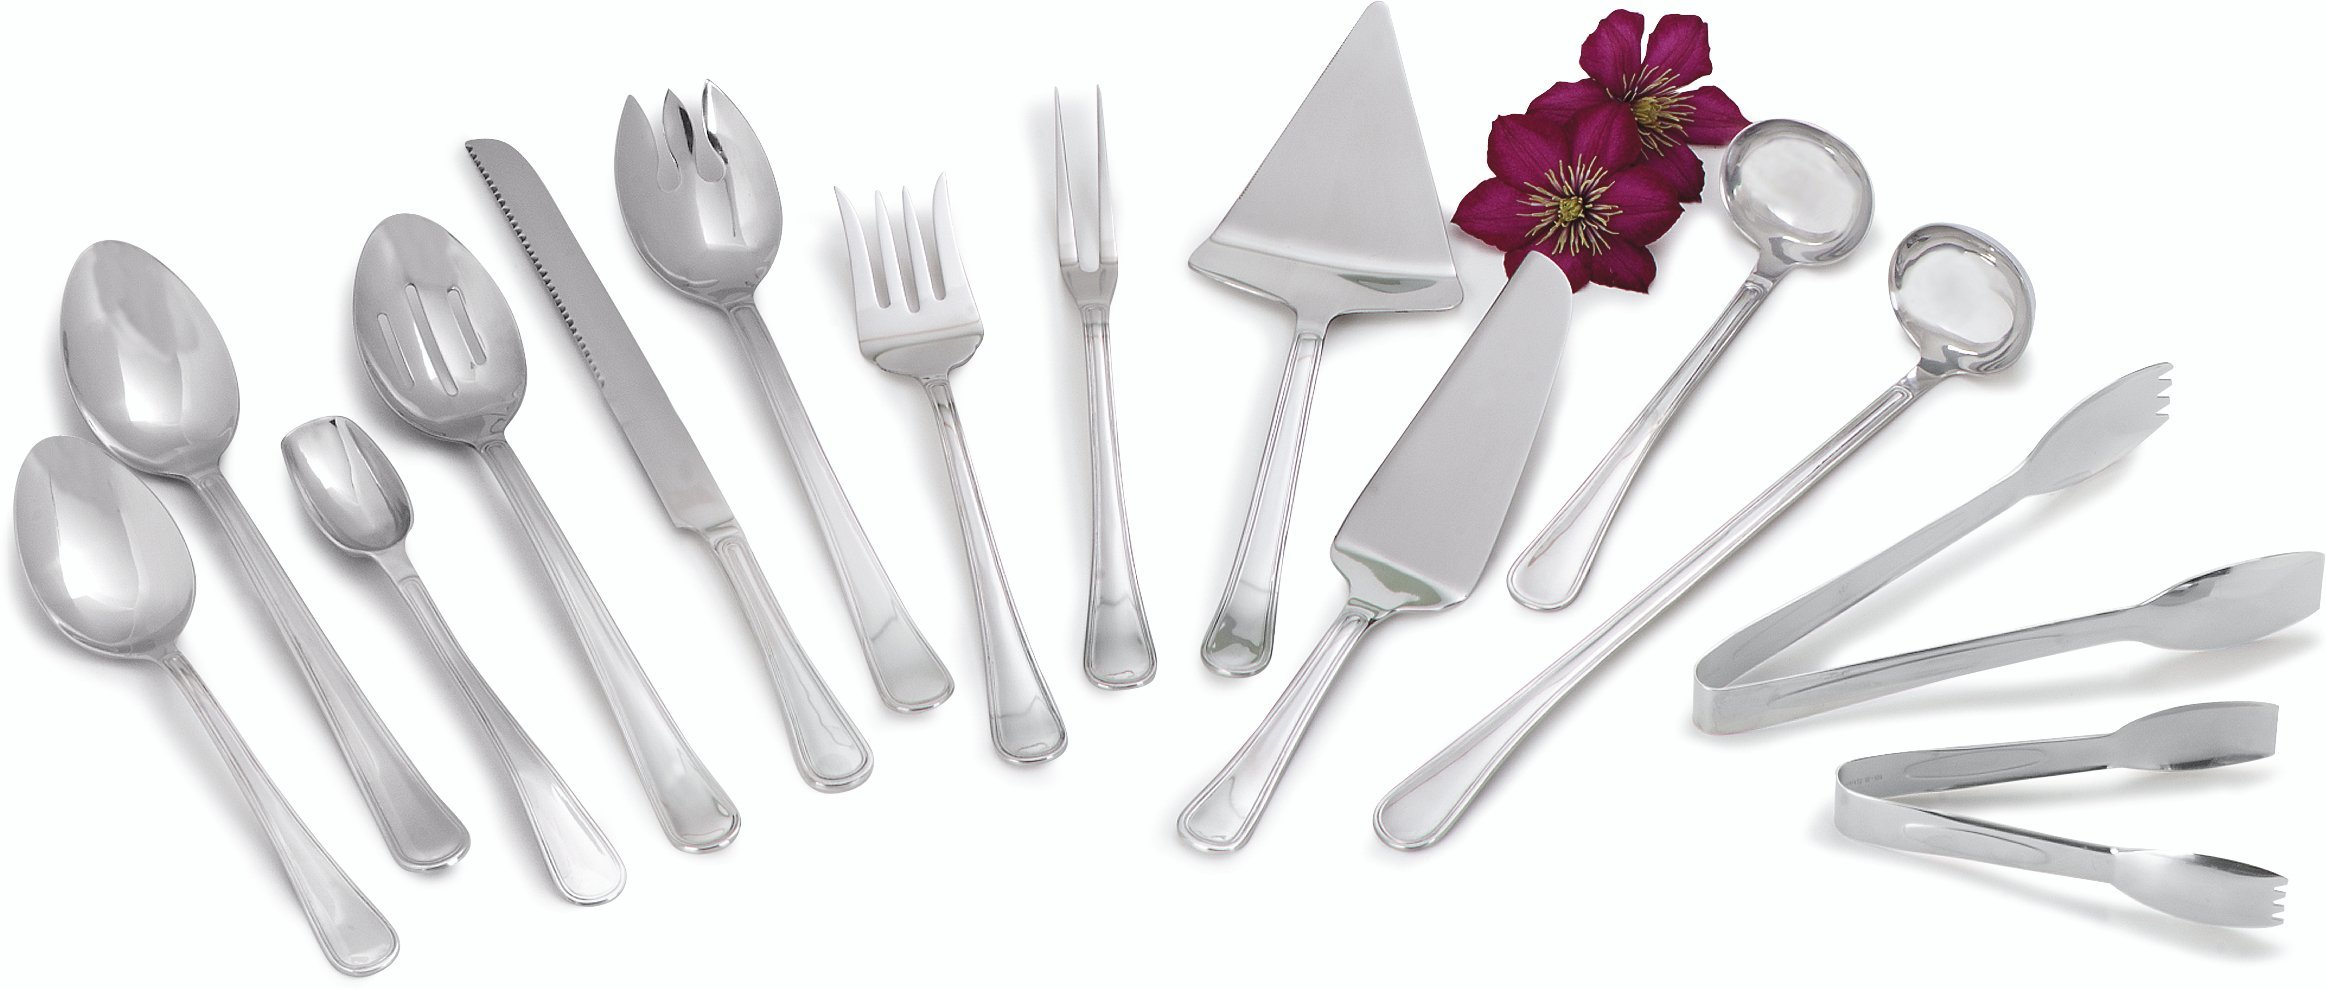 Carlisle 609009 Aria Stainless Steel Heavy-Duty Solid Spoon, 10'' (Pack of 12) by Carlisle